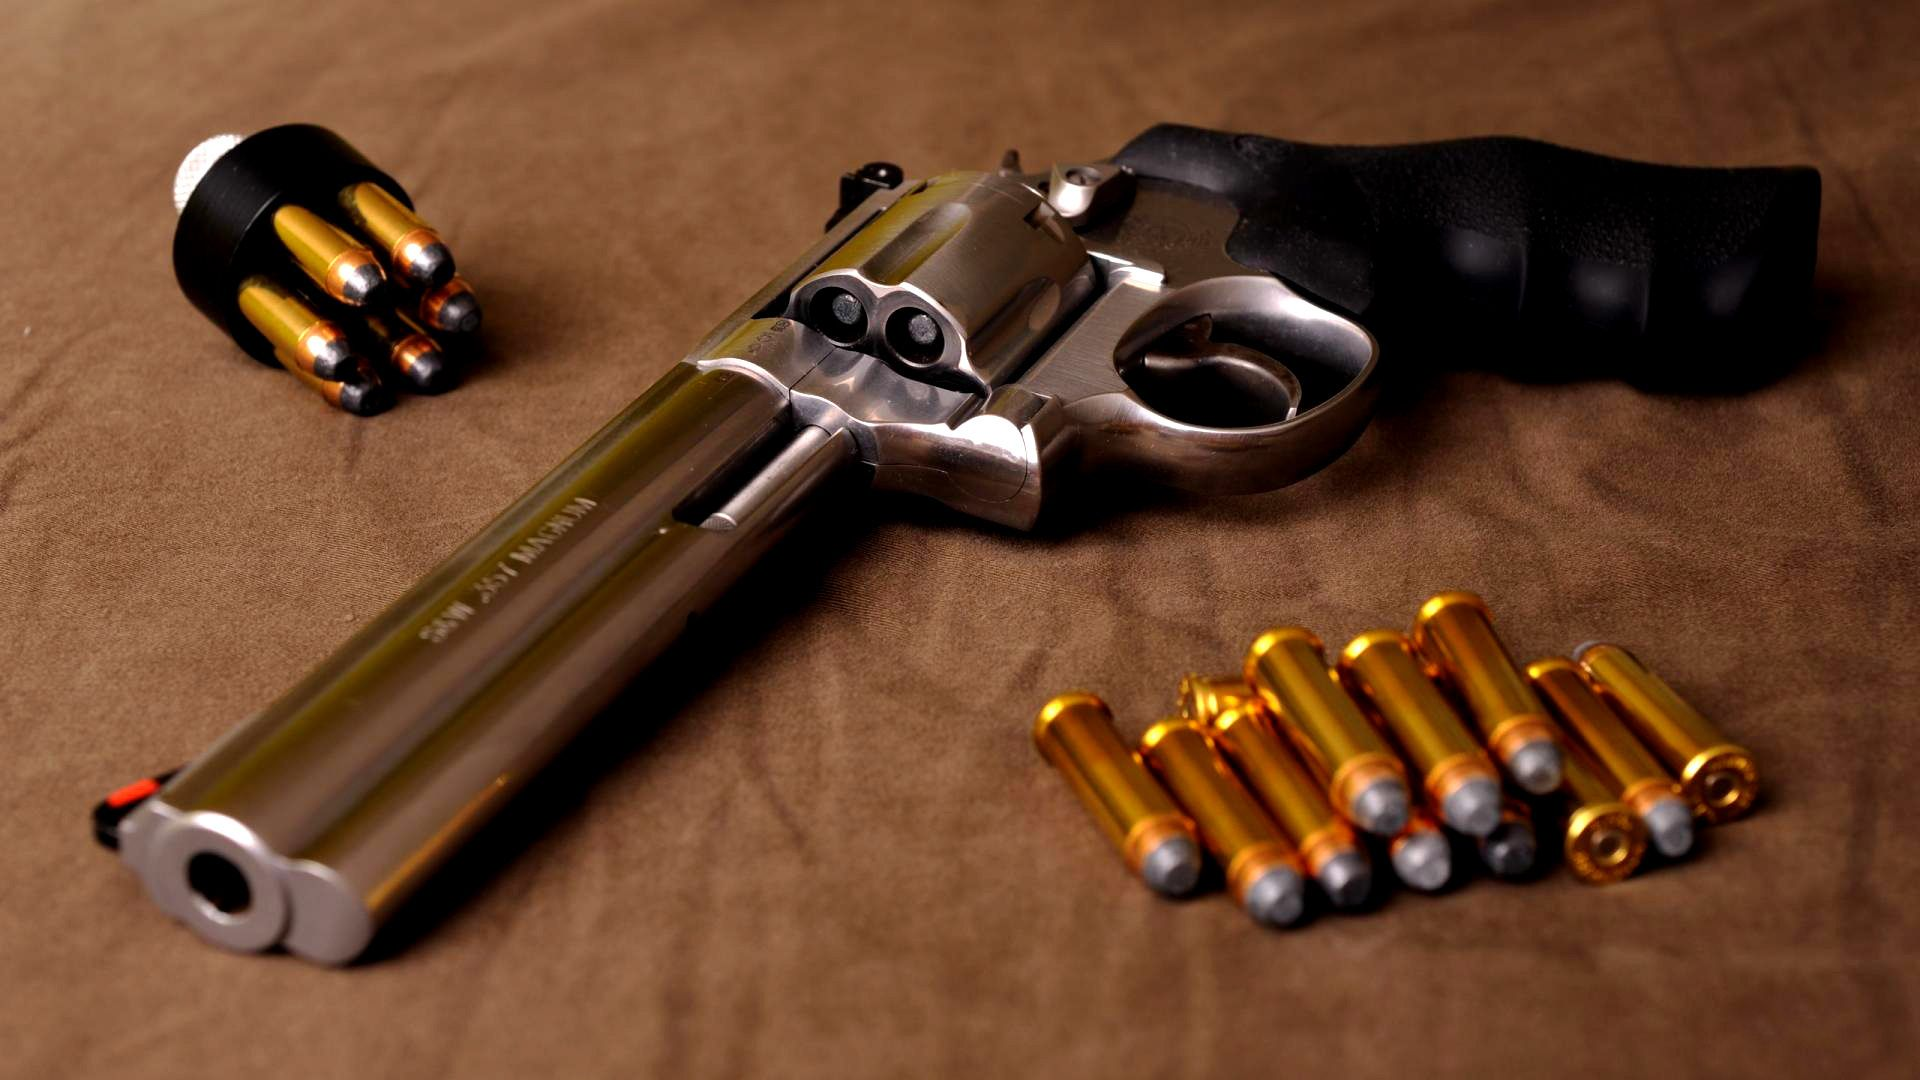 Revolver Smith & Wesson Cartridges Wallpaper - http://www.gbwallpapers.com/revolver-smith-wesson-cartridges-wallpaper-2/ (Cartridges, Revolver, Smith & Wesson, Wallpaper / Other)